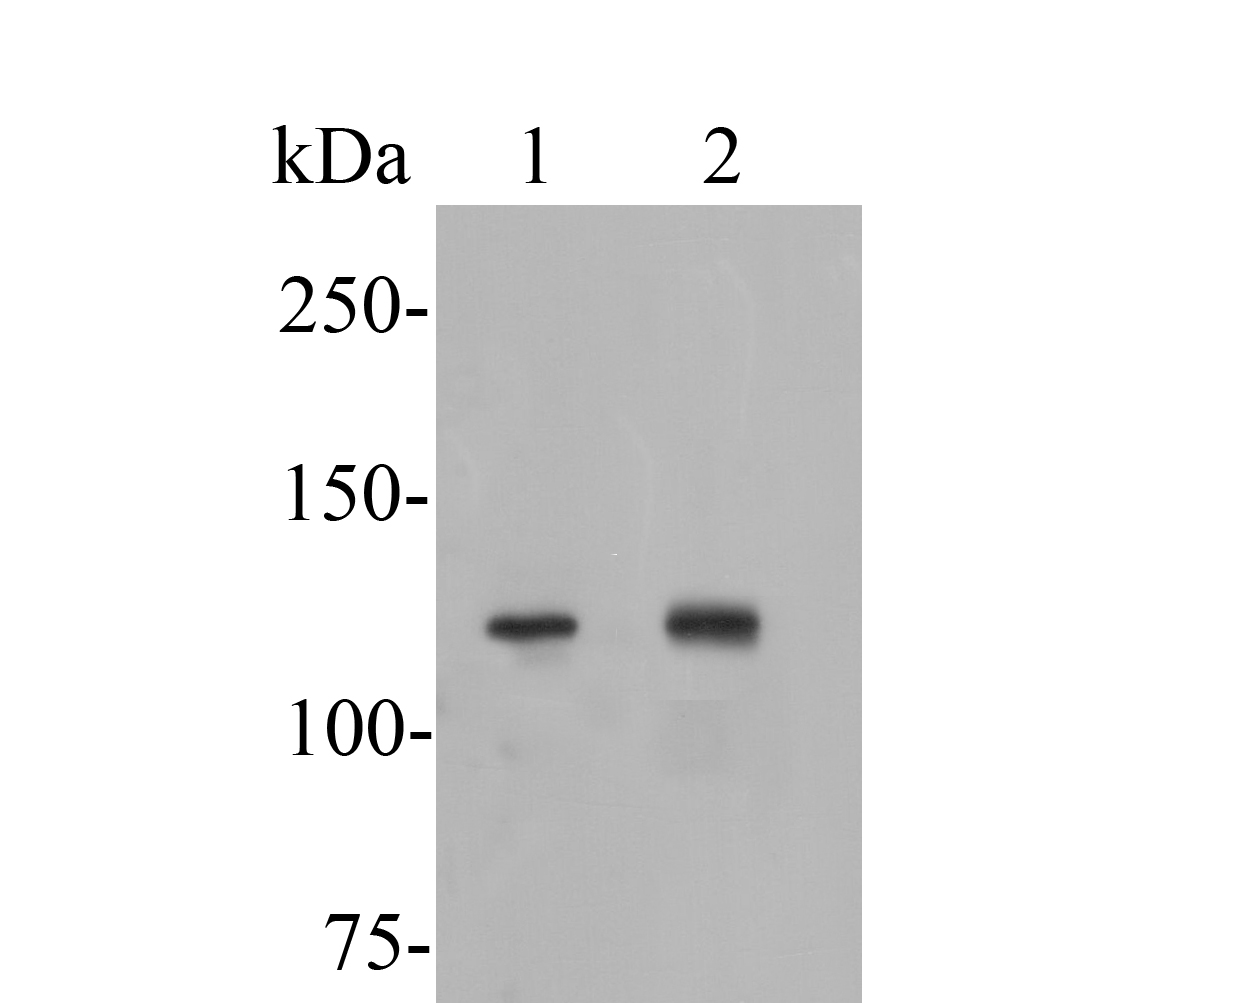 Western blot analysis of ATP8A1 on different lysates. Proteins were transferred to a PVDF membrane and blocked with 5% BSA in PBS for 1 hour at room temperature. The primary antibody (ER1902-61, 1/500) was used in 5% BSA at room temperature for 2 hours. Goat Anti-Rabbit IgG - HRP Secondary Antibody (HA1001) at 1:5,000 dilution was used for 1 hour at room temperature.<br />  Positive control: <br />  Lane 1: MCF-7 cell lysate<br />  Lane 2: Rat brain tissue lysate